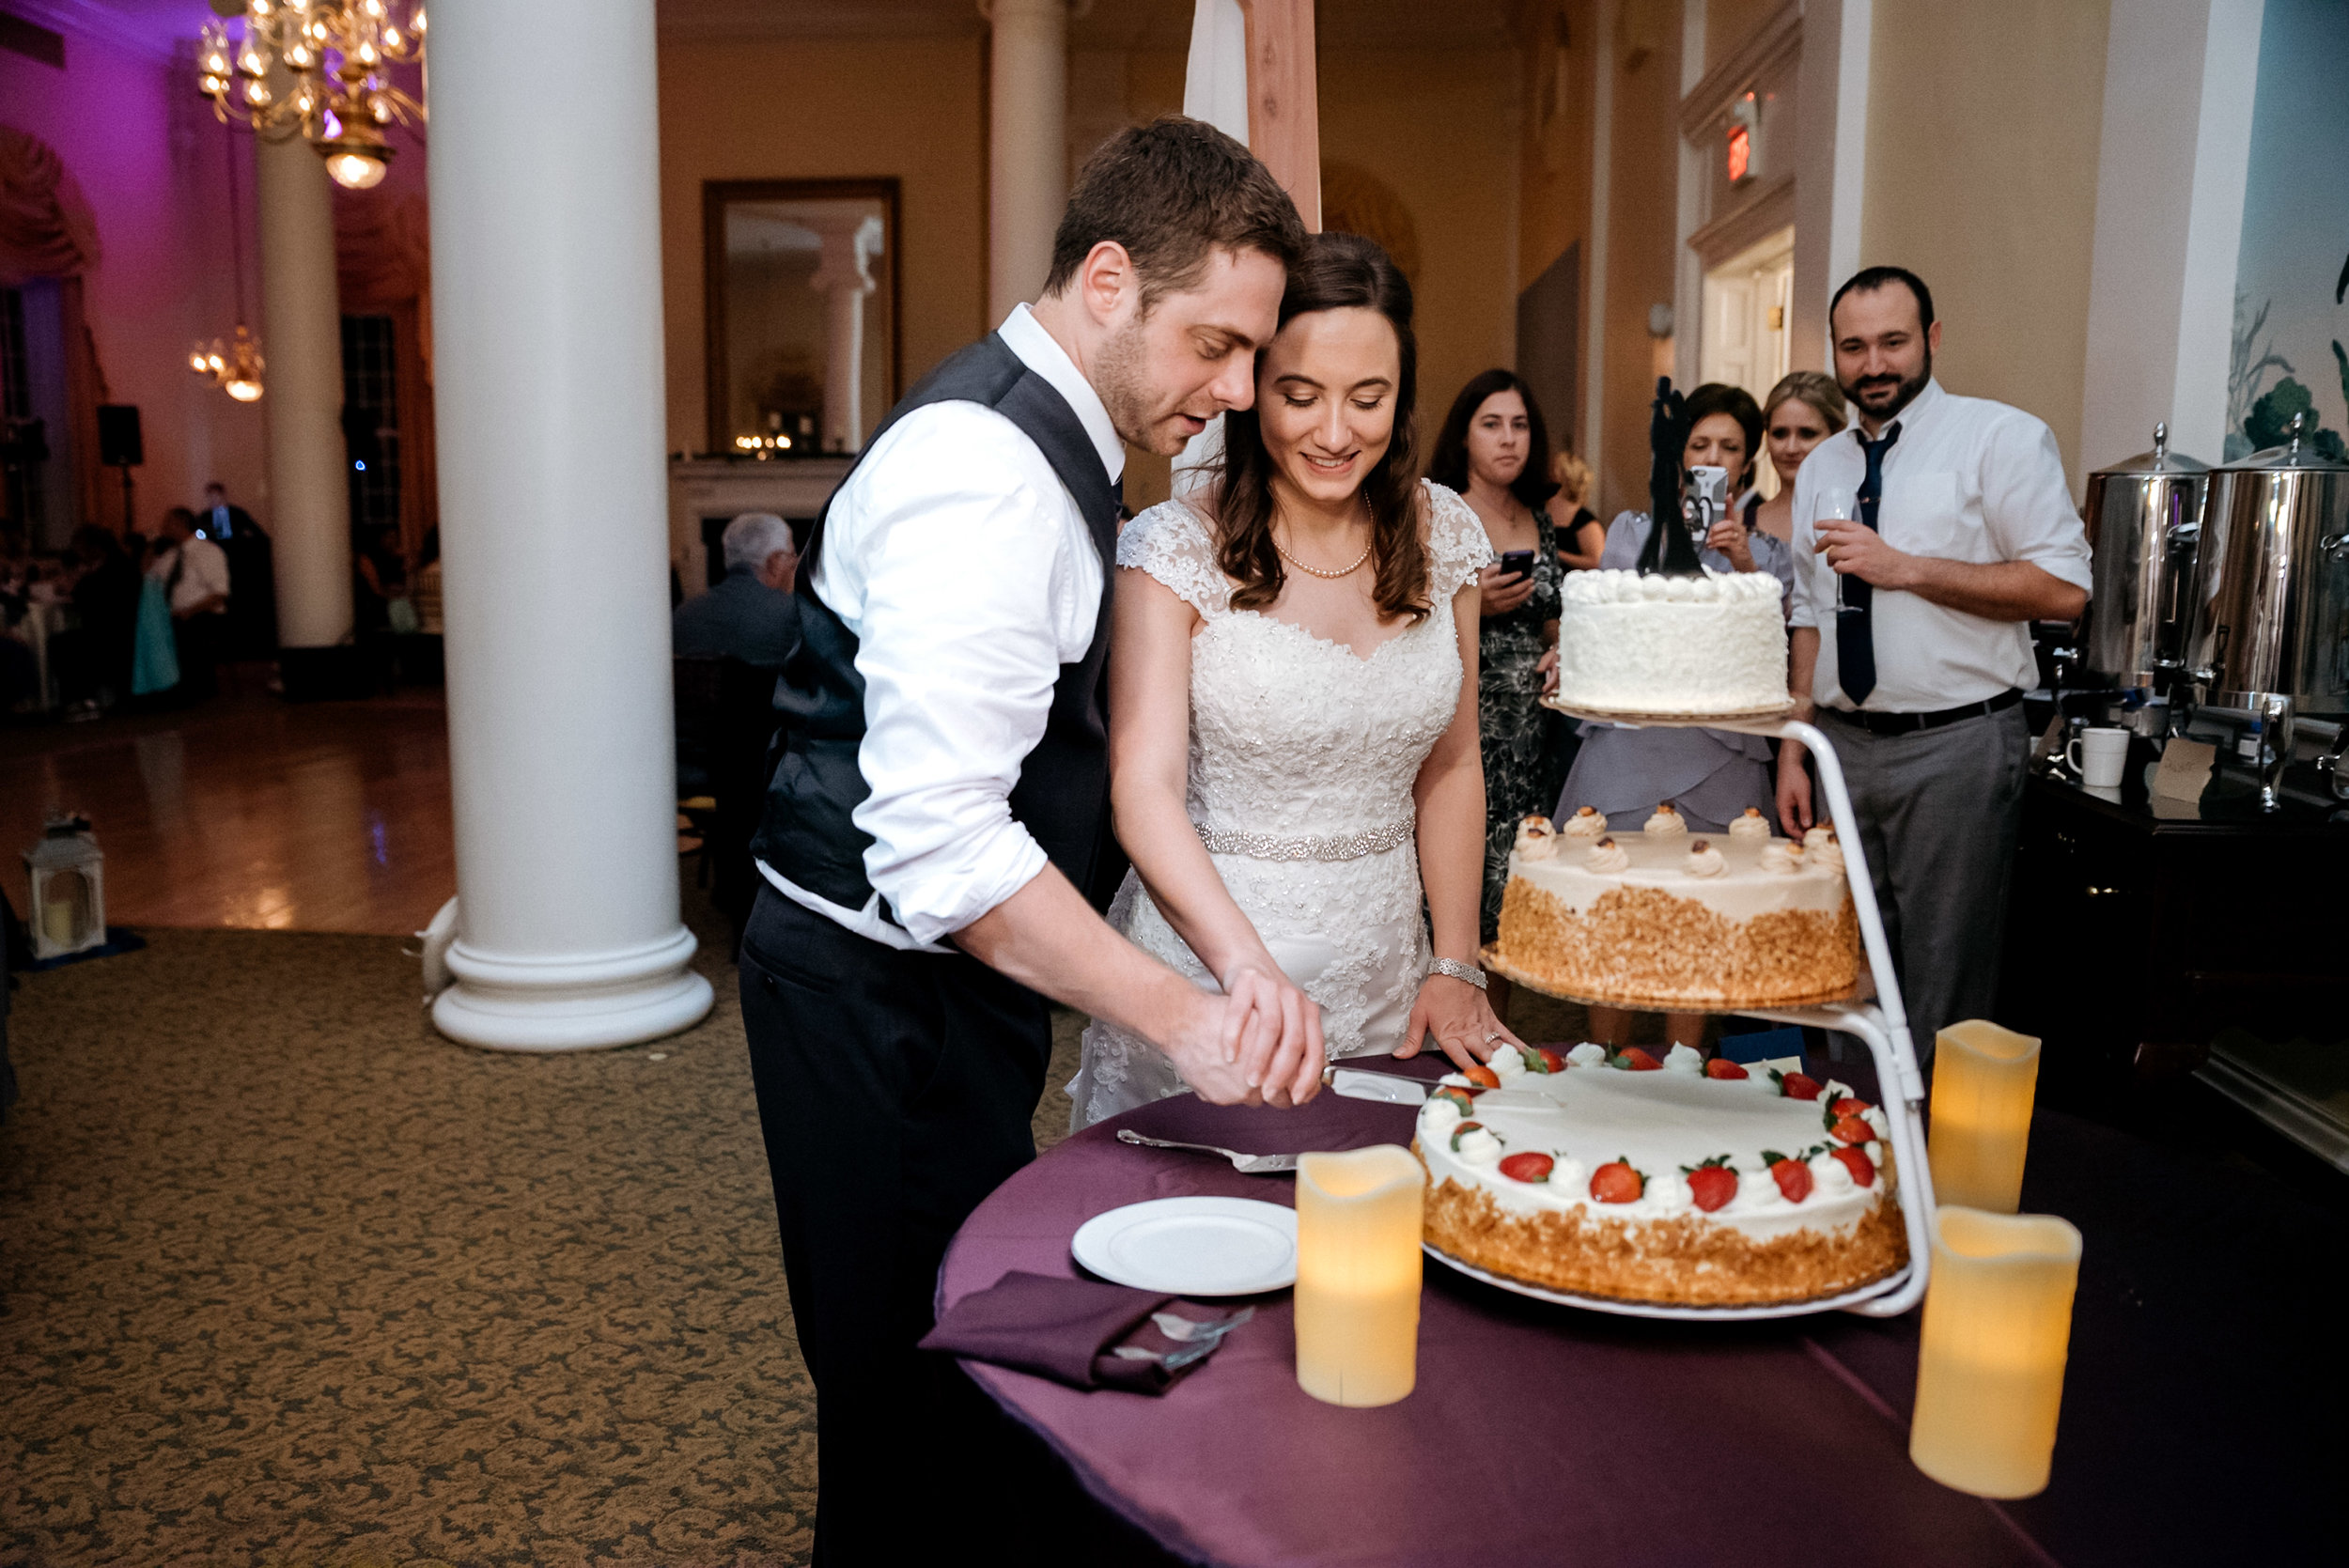 Washington DC Wedding Photos - Cake cutting